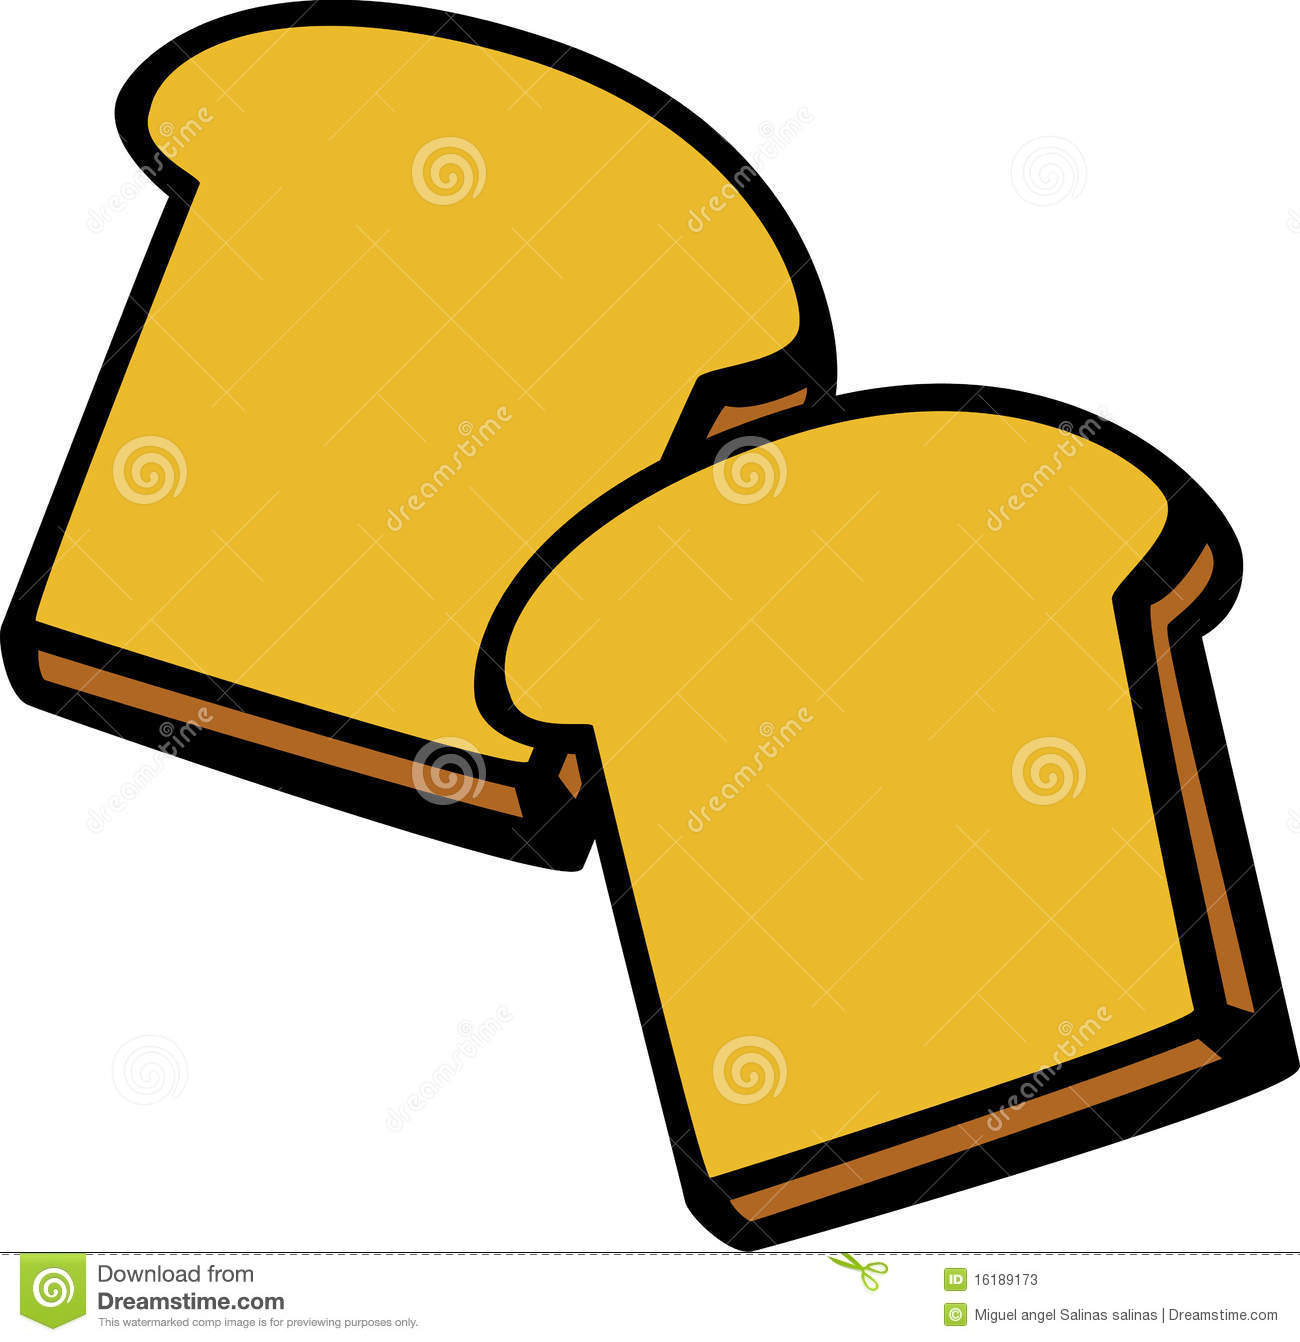 2 slices of bread clipart jpg freeuse download Slice Of Bread Clipart | Free download best Slice Of Bread Clipart ... jpg freeuse download